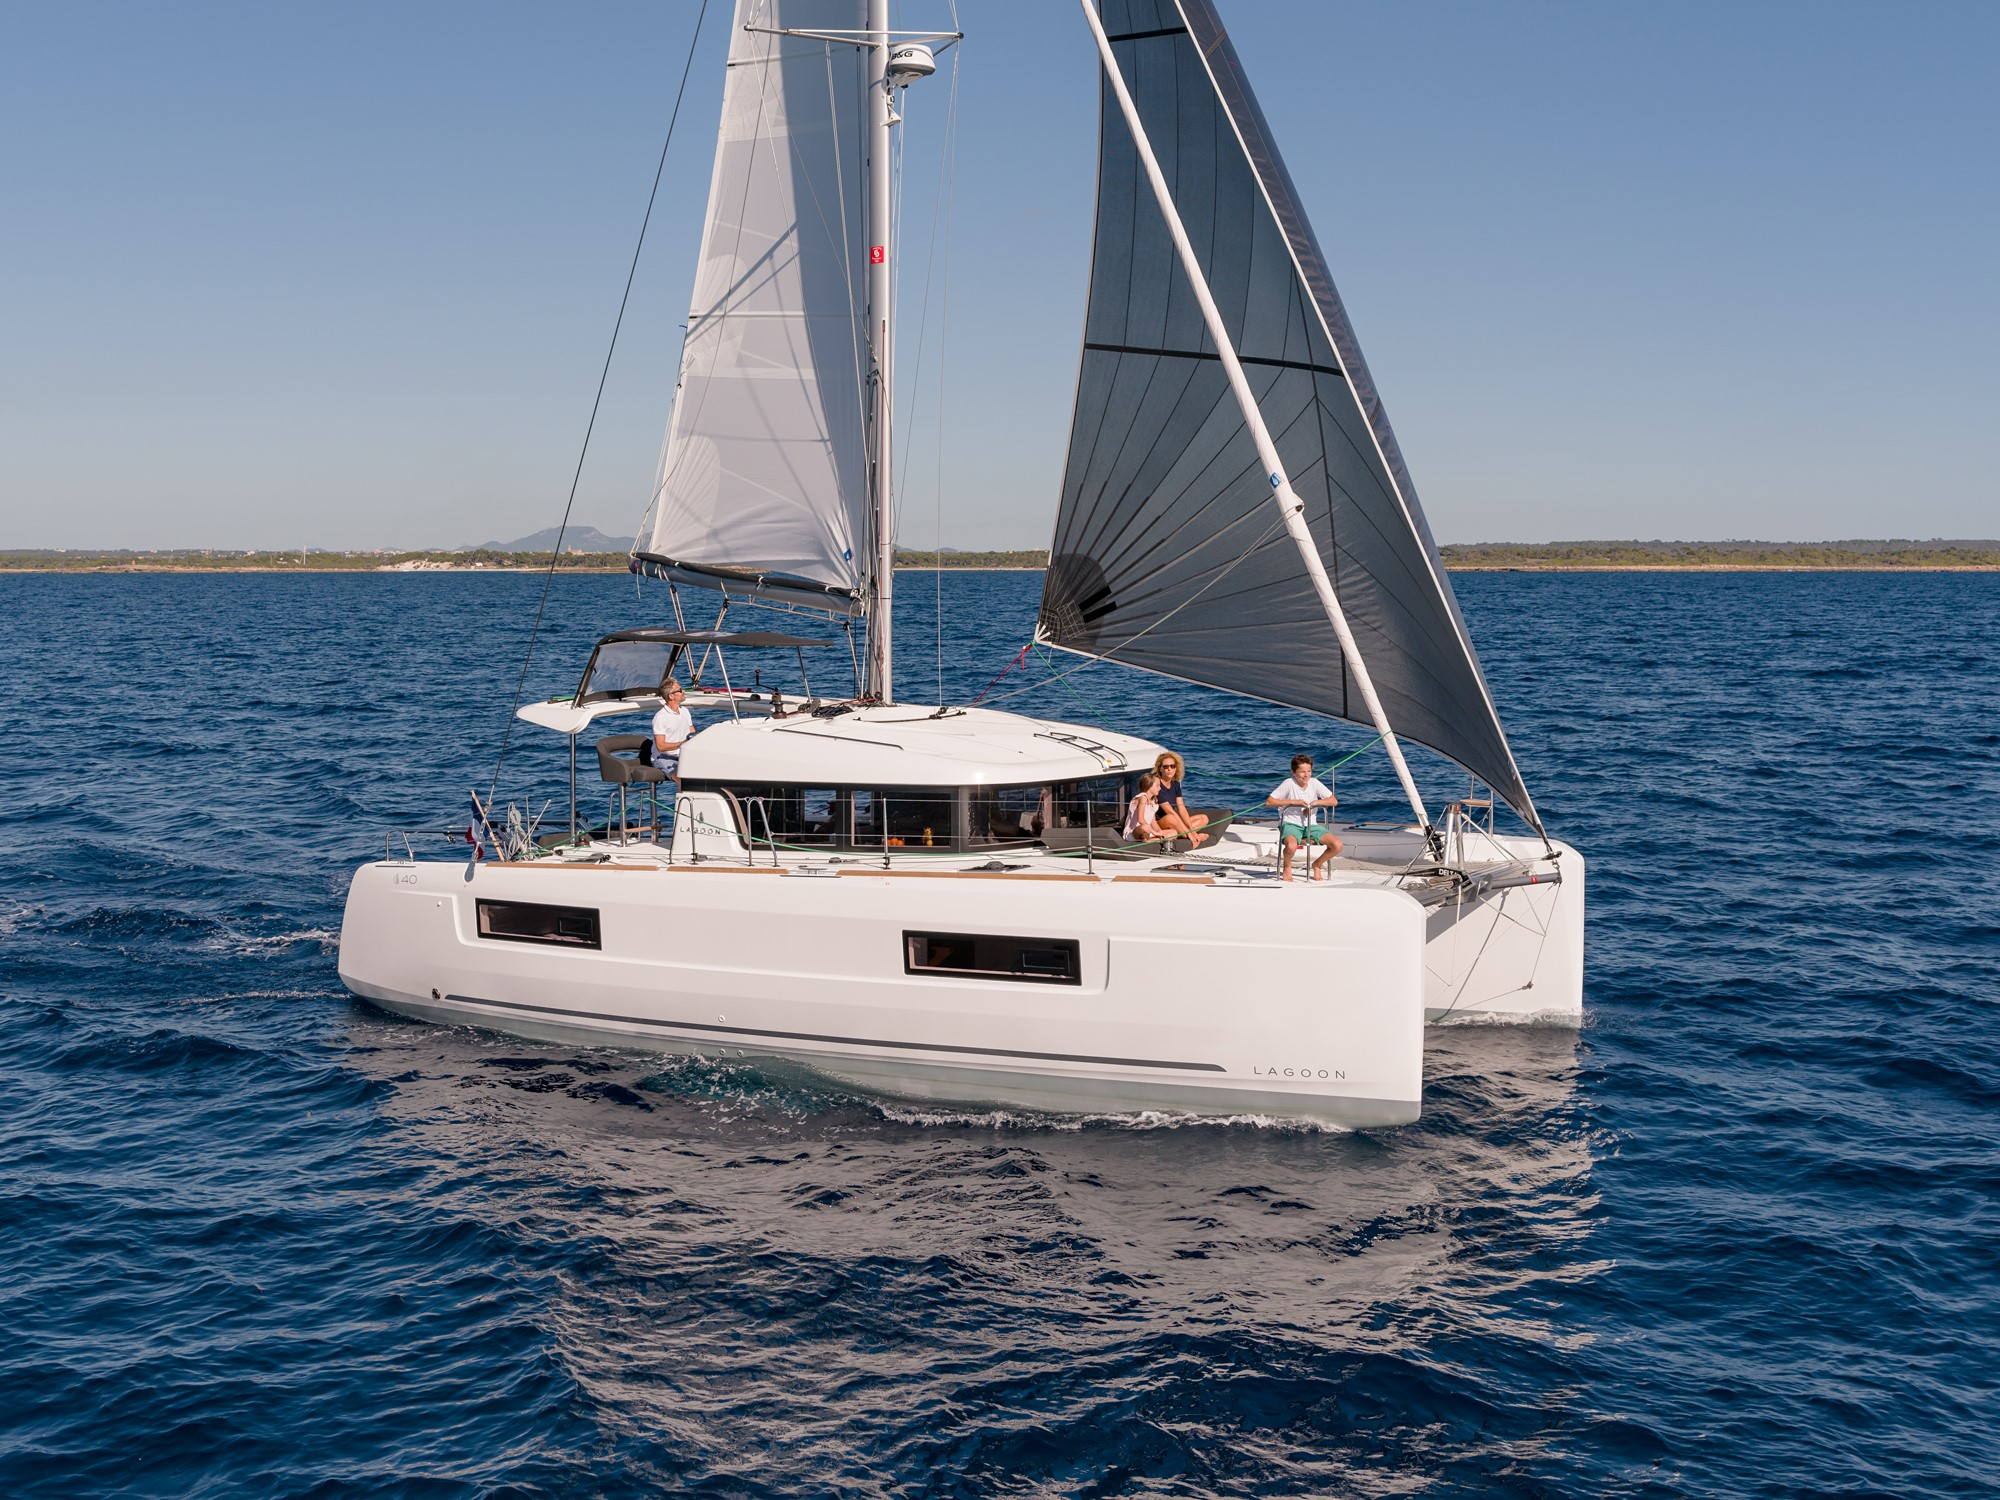 Lagoon 40 Charter Ownership Lagoon 40